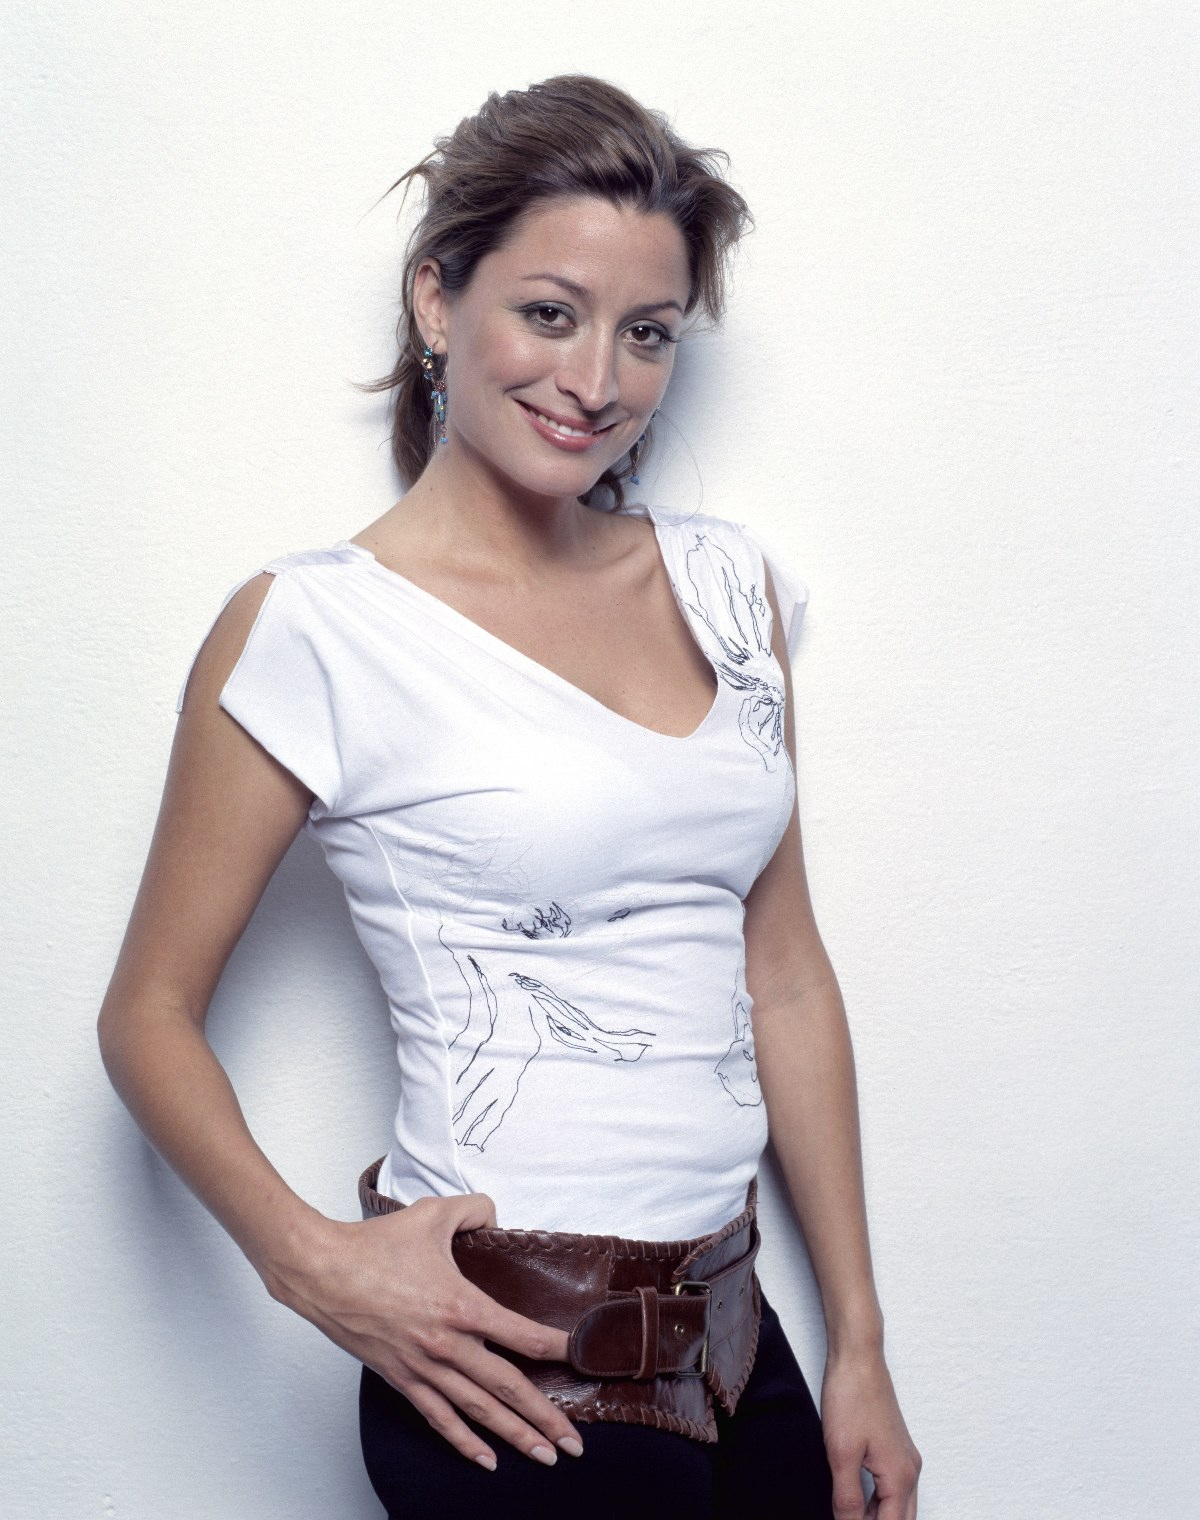 Feet Rebecca Loos naked (98 foto and video), Pussy, Paparazzi, Selfie, lingerie 2015